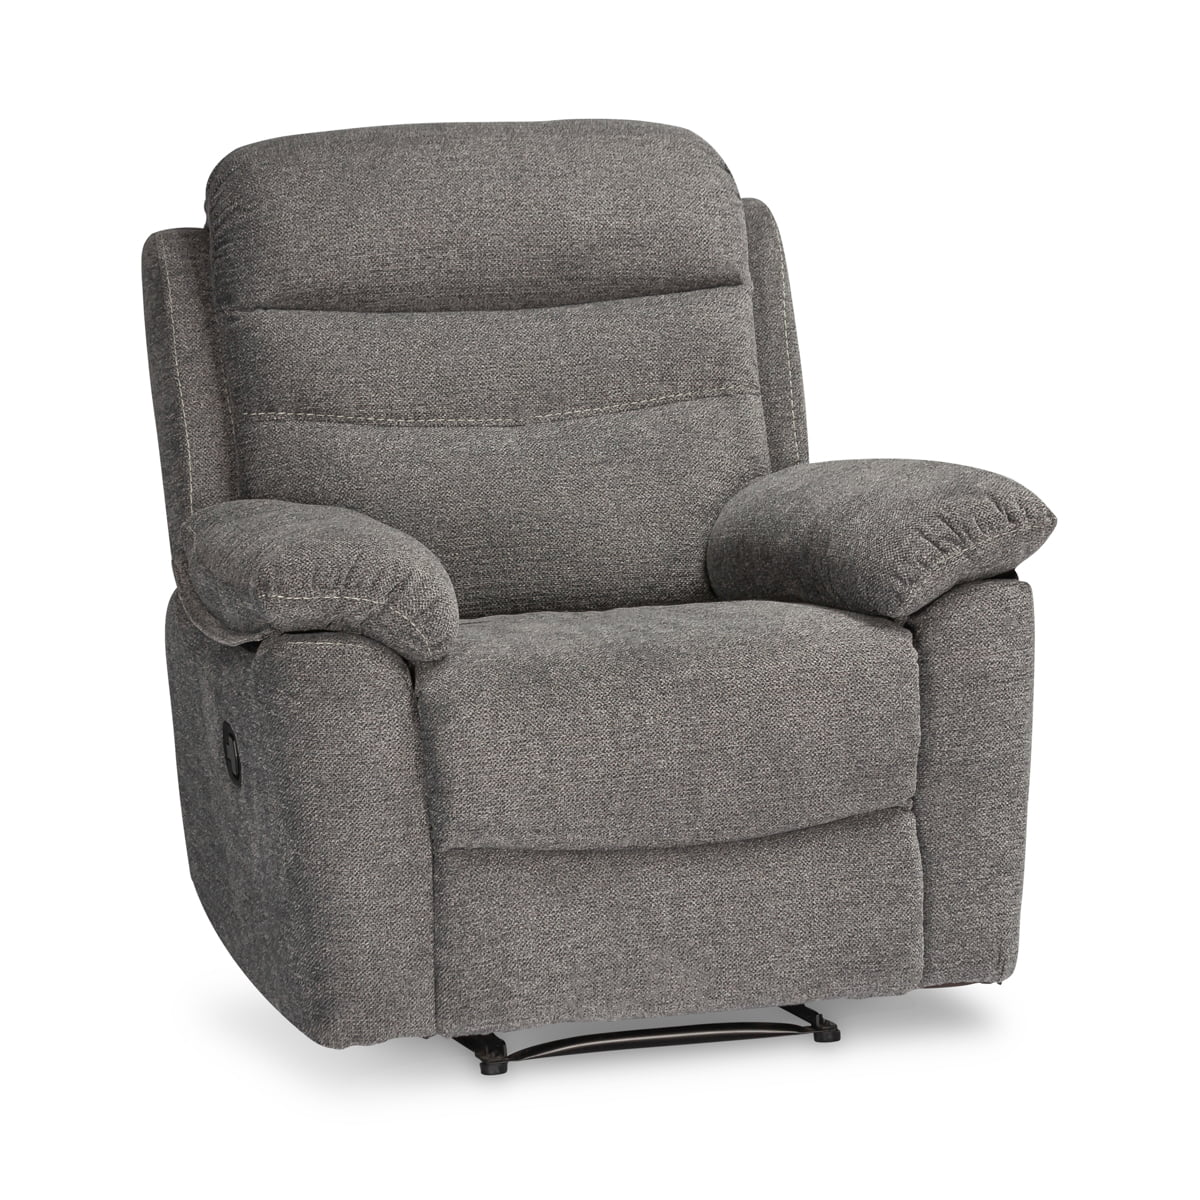 Bellmore Grey 1 Seater Recliner